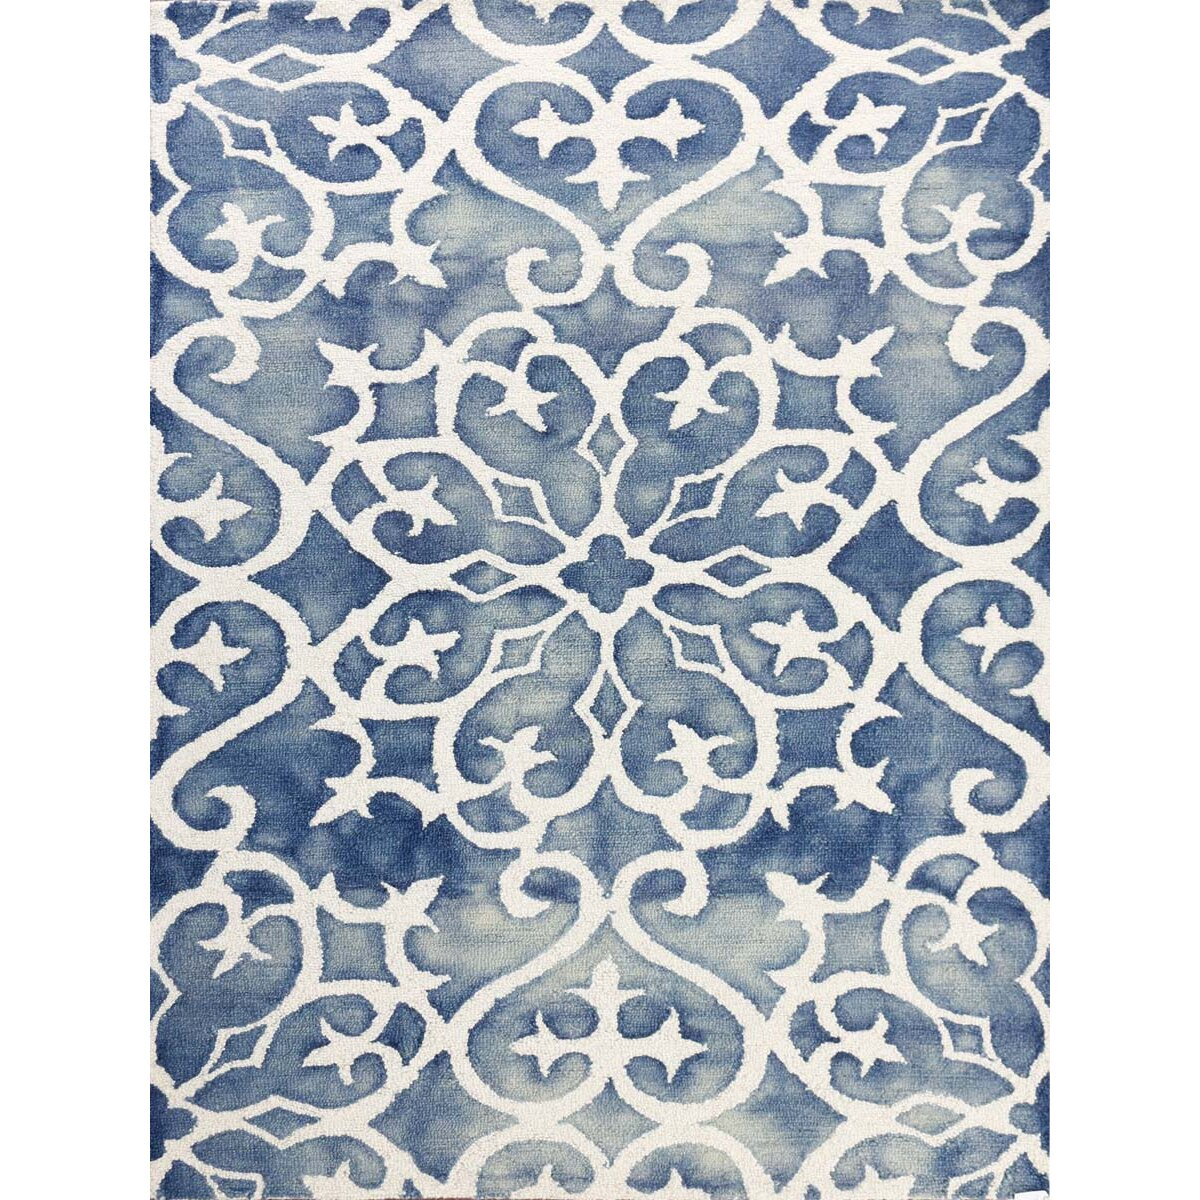 Blue And White Kitchen Rug